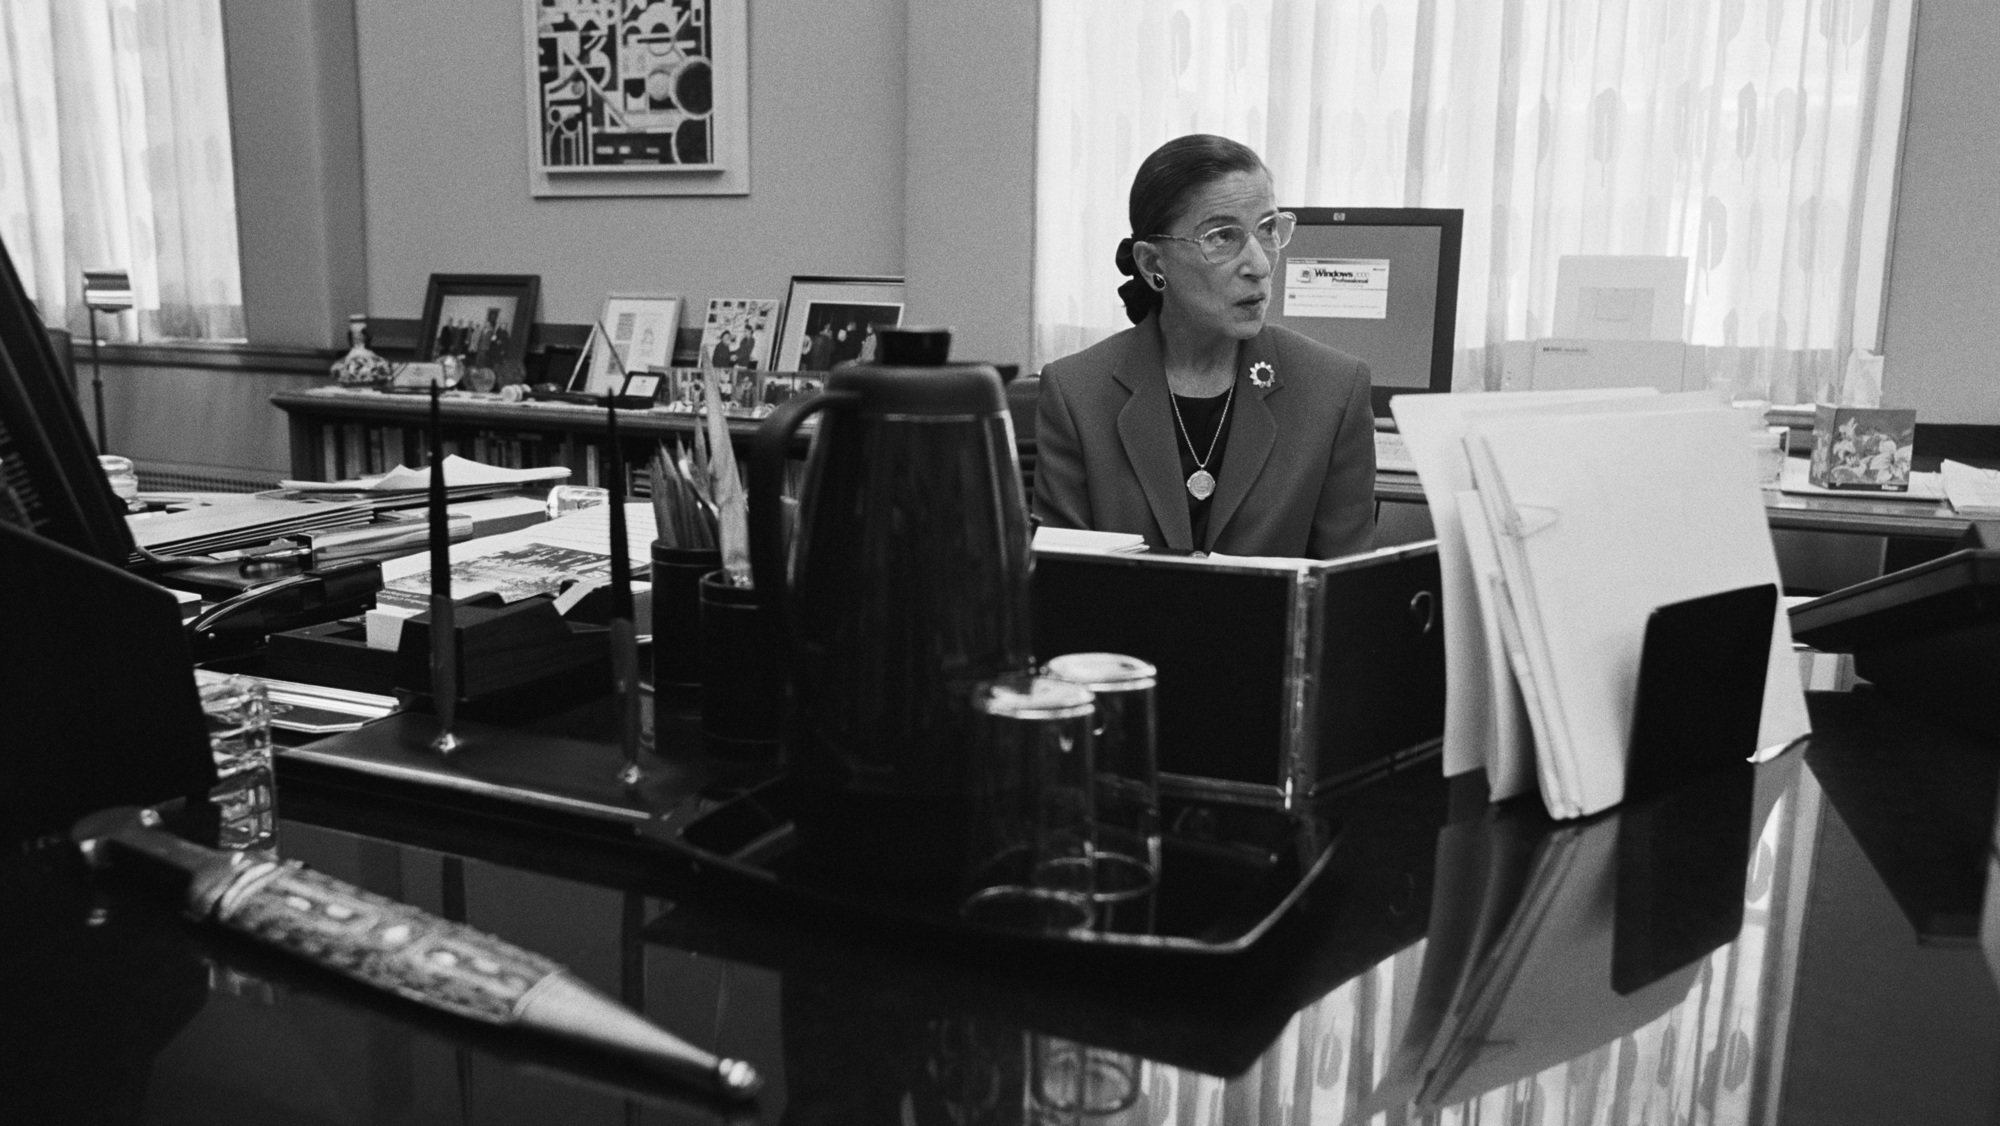 Supreme Court Justice Ruth Bader Ginsburg sits in her chambers in 2002 in Washington, DC.